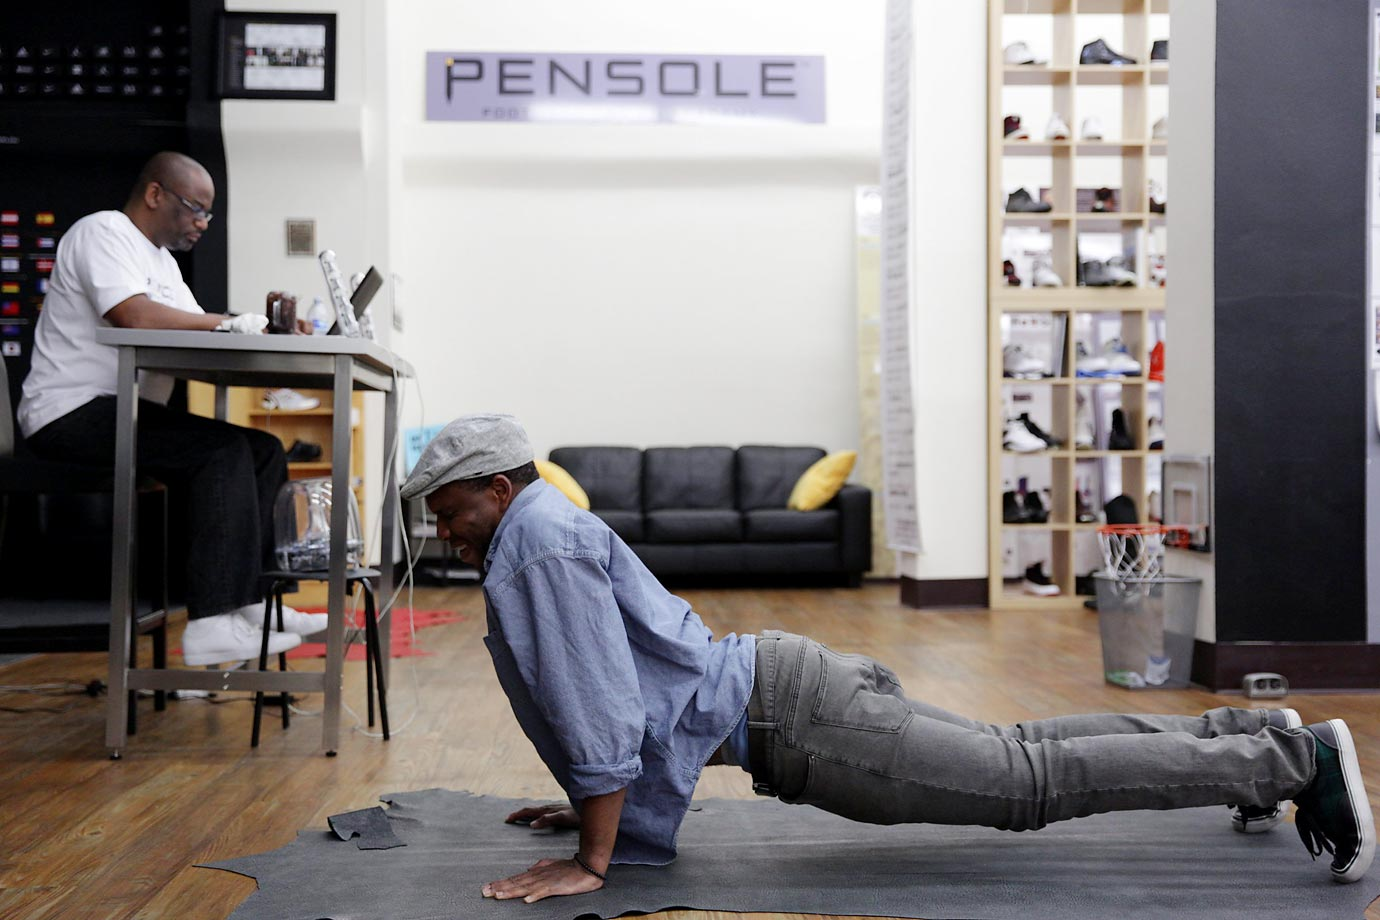 Tardiness is unacceptable at PENSOLE — and punishable by pushups.